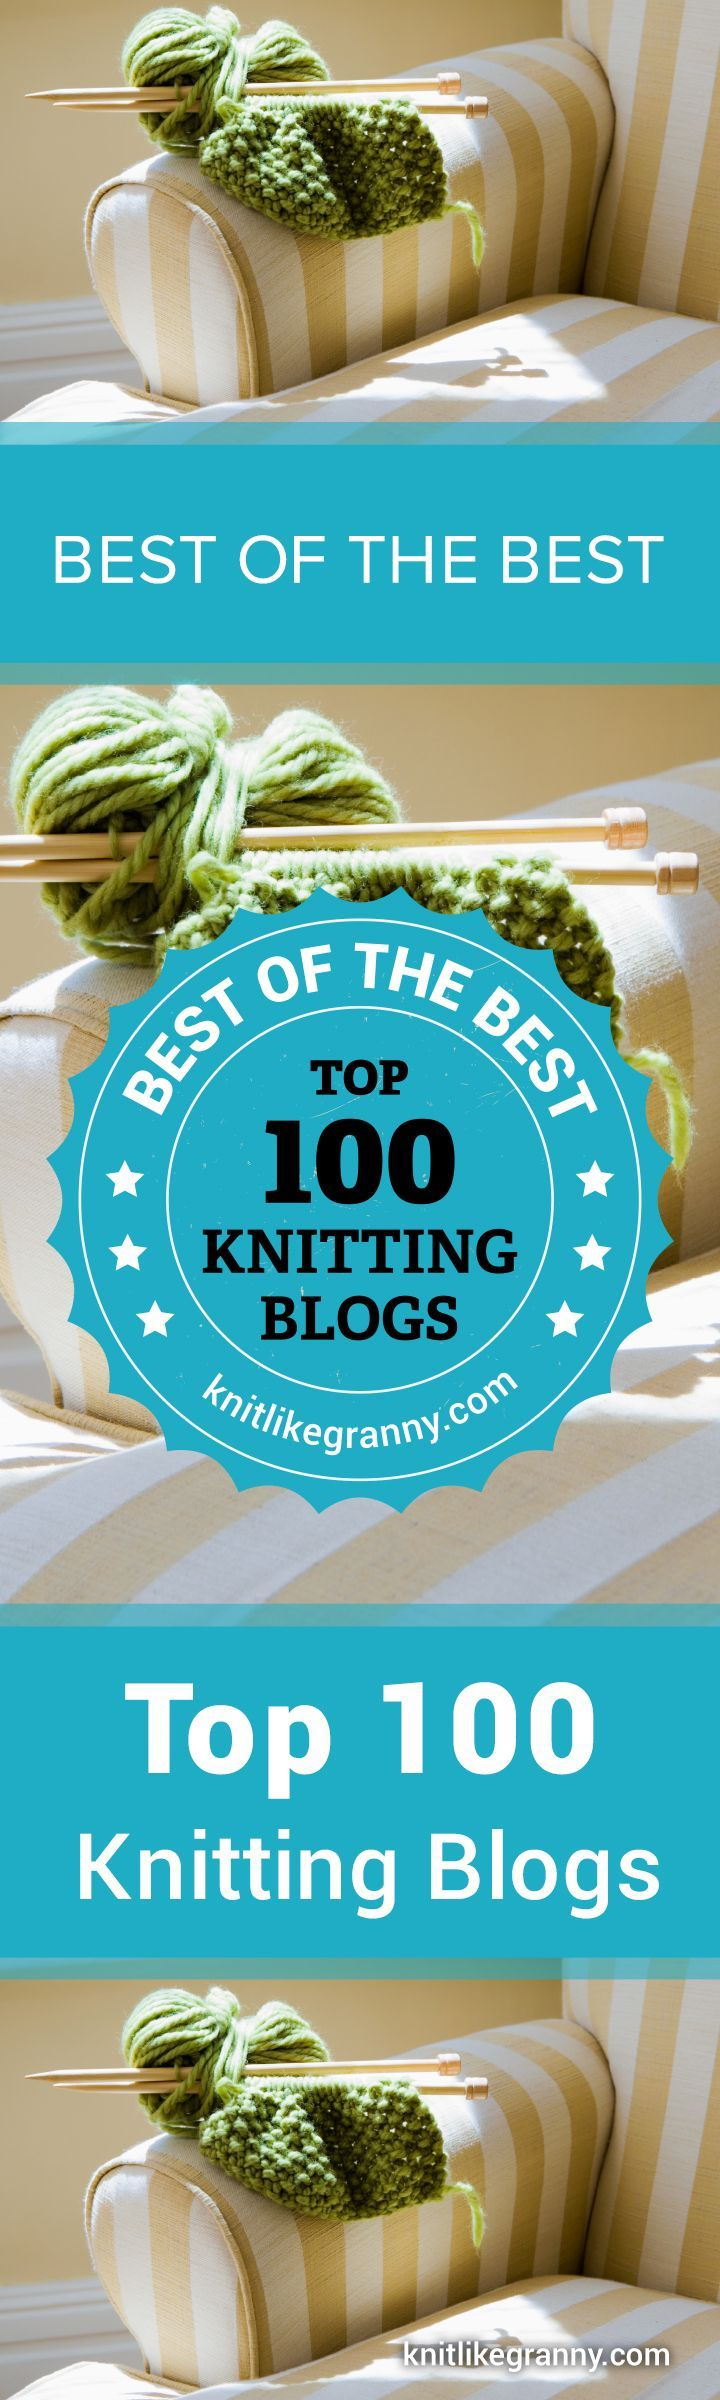 The Top 100 Best Knitting Blogs Websites And Best Knitting Bloggers